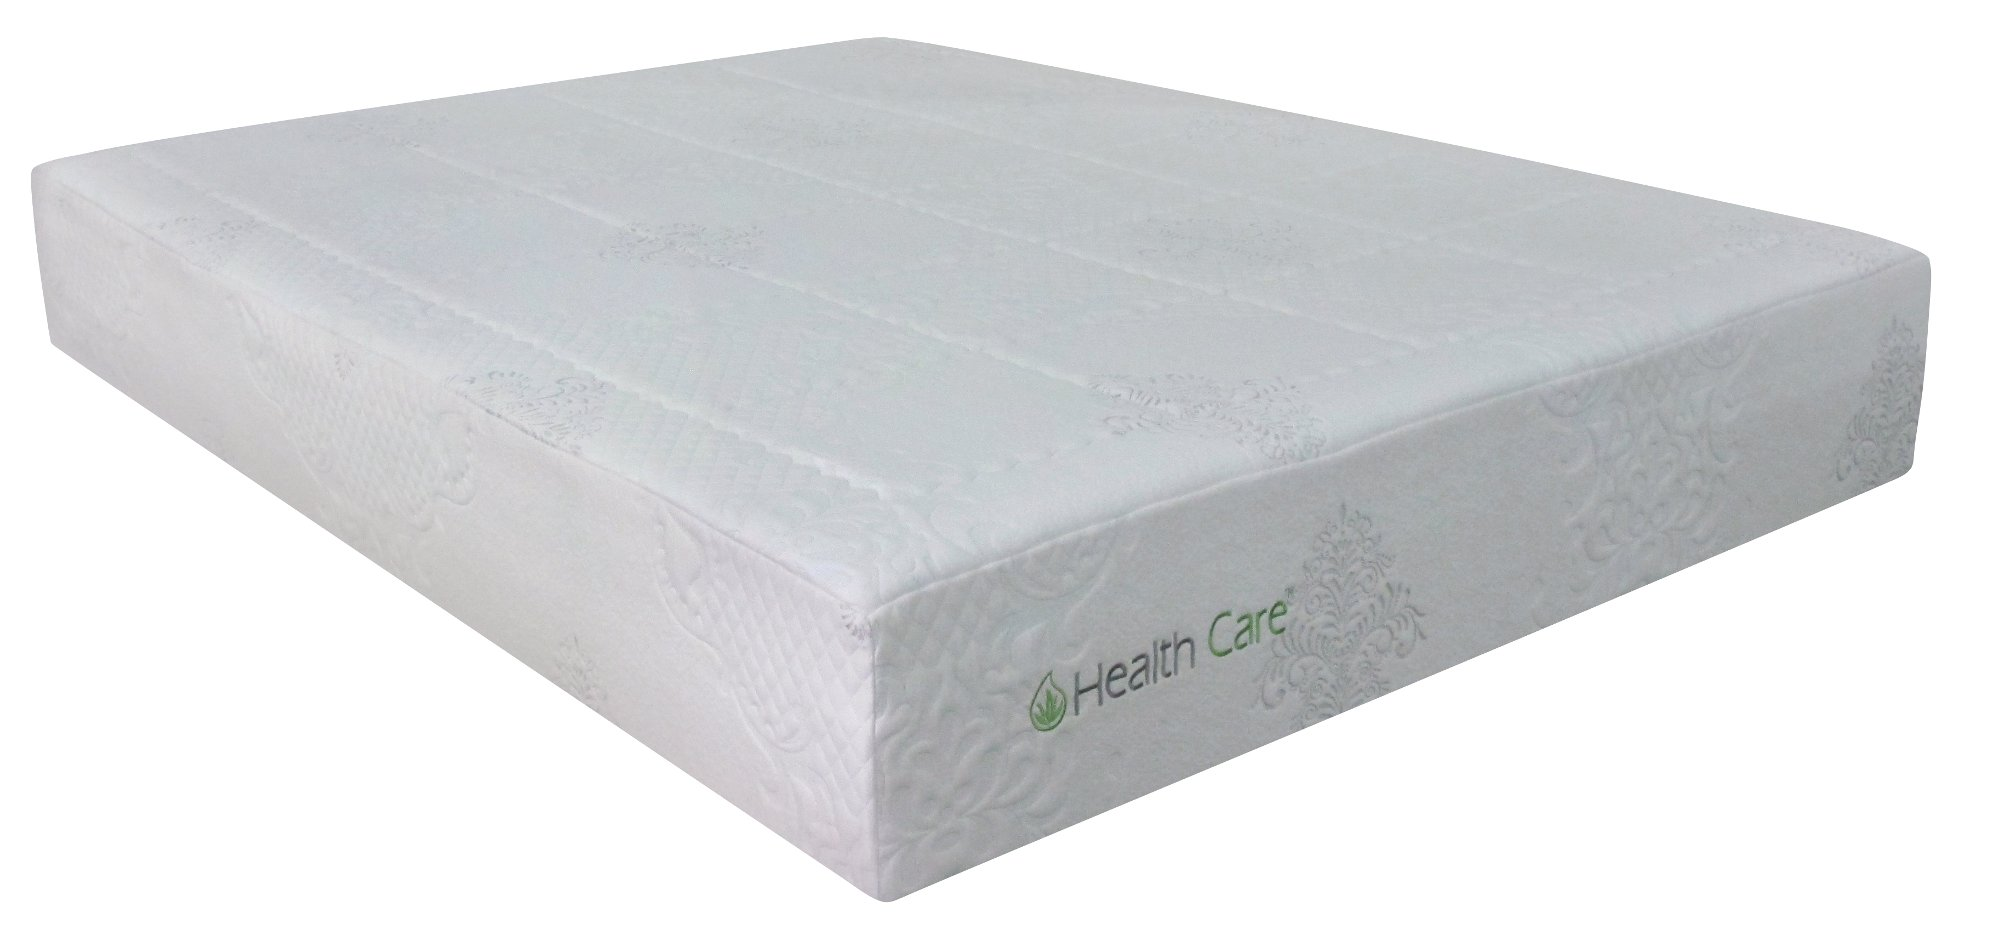 Twin Xl 12 Luxury Gel Memory Foam Mattress With Adjustable Base Rc Willey Furniture Store